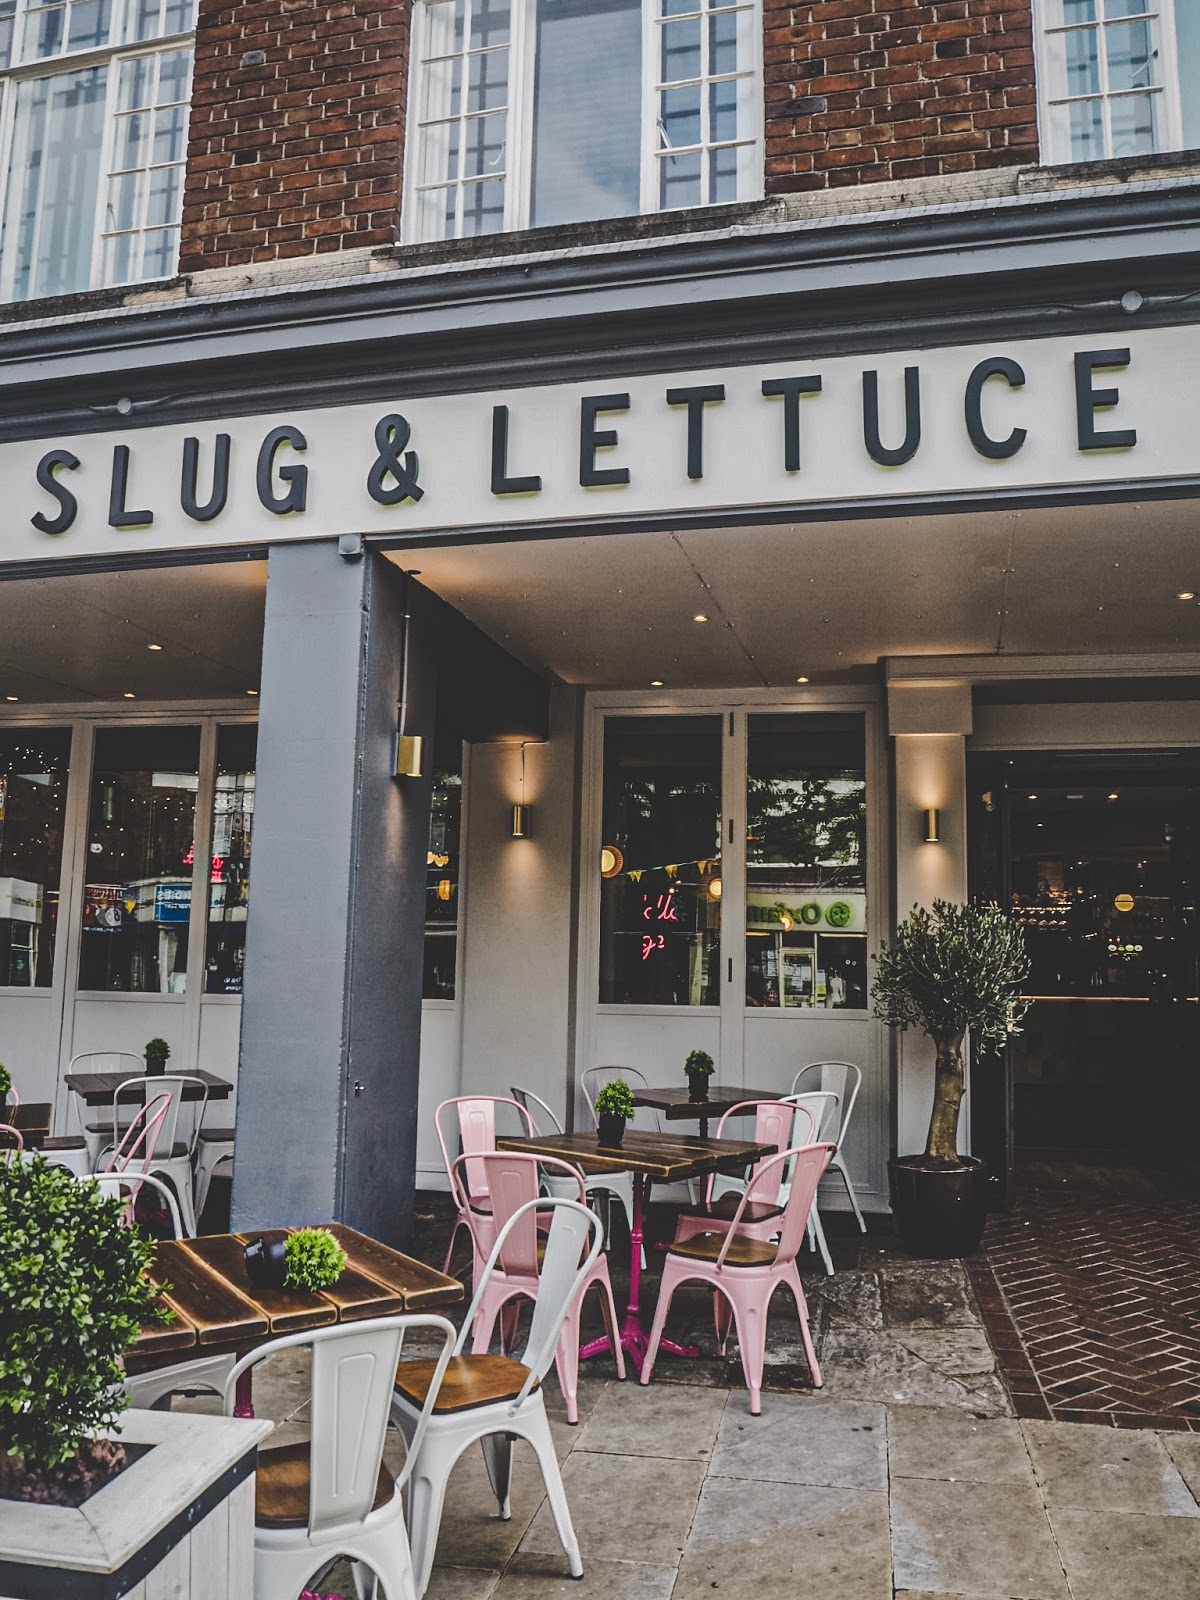 The store front of the new Slug & Lettuce location in Watford with pink and white outdoor seating and green fake plants